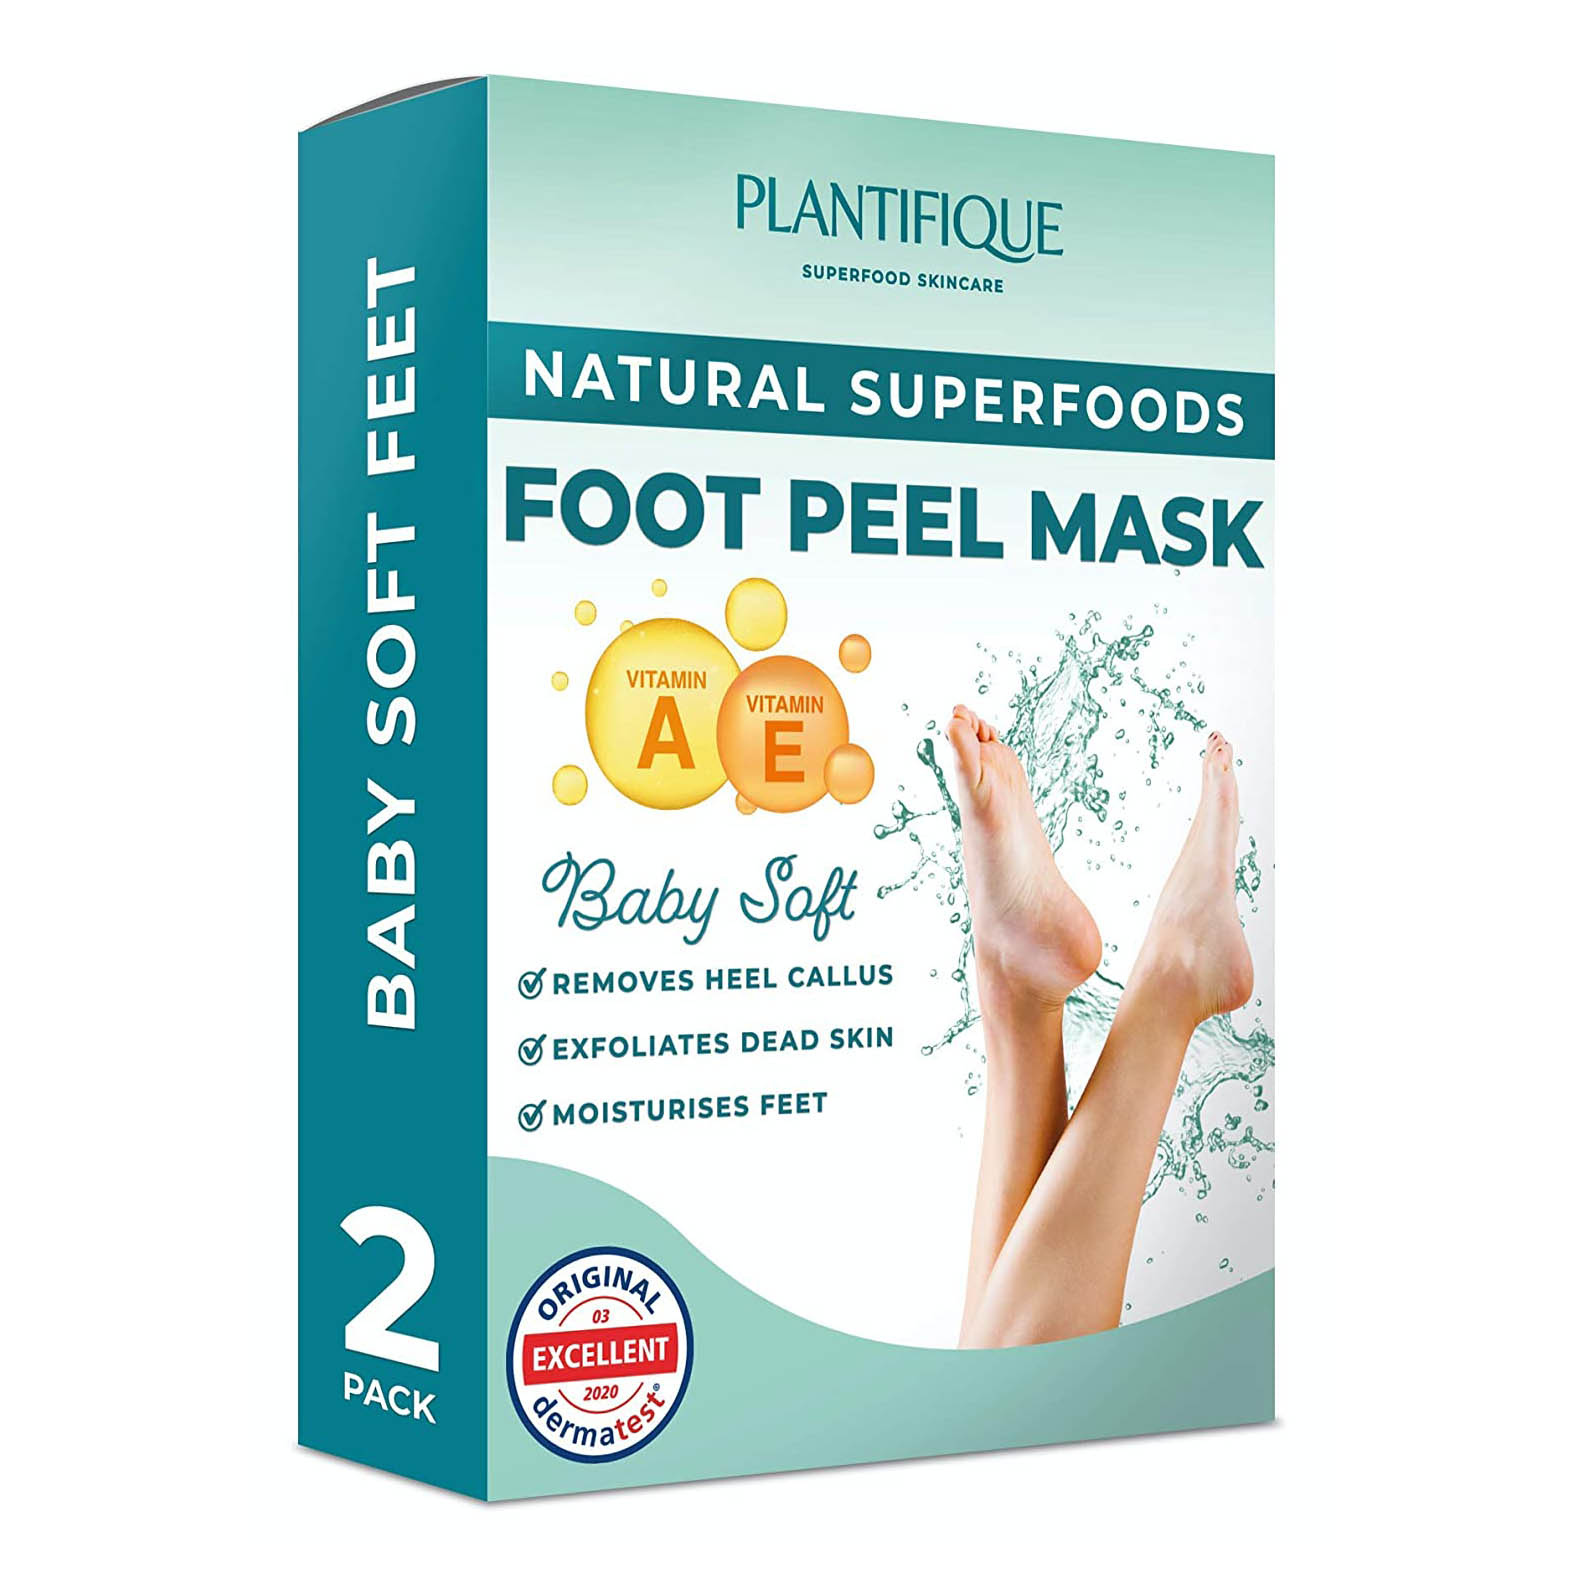 Plantifique Foot Peel Mask